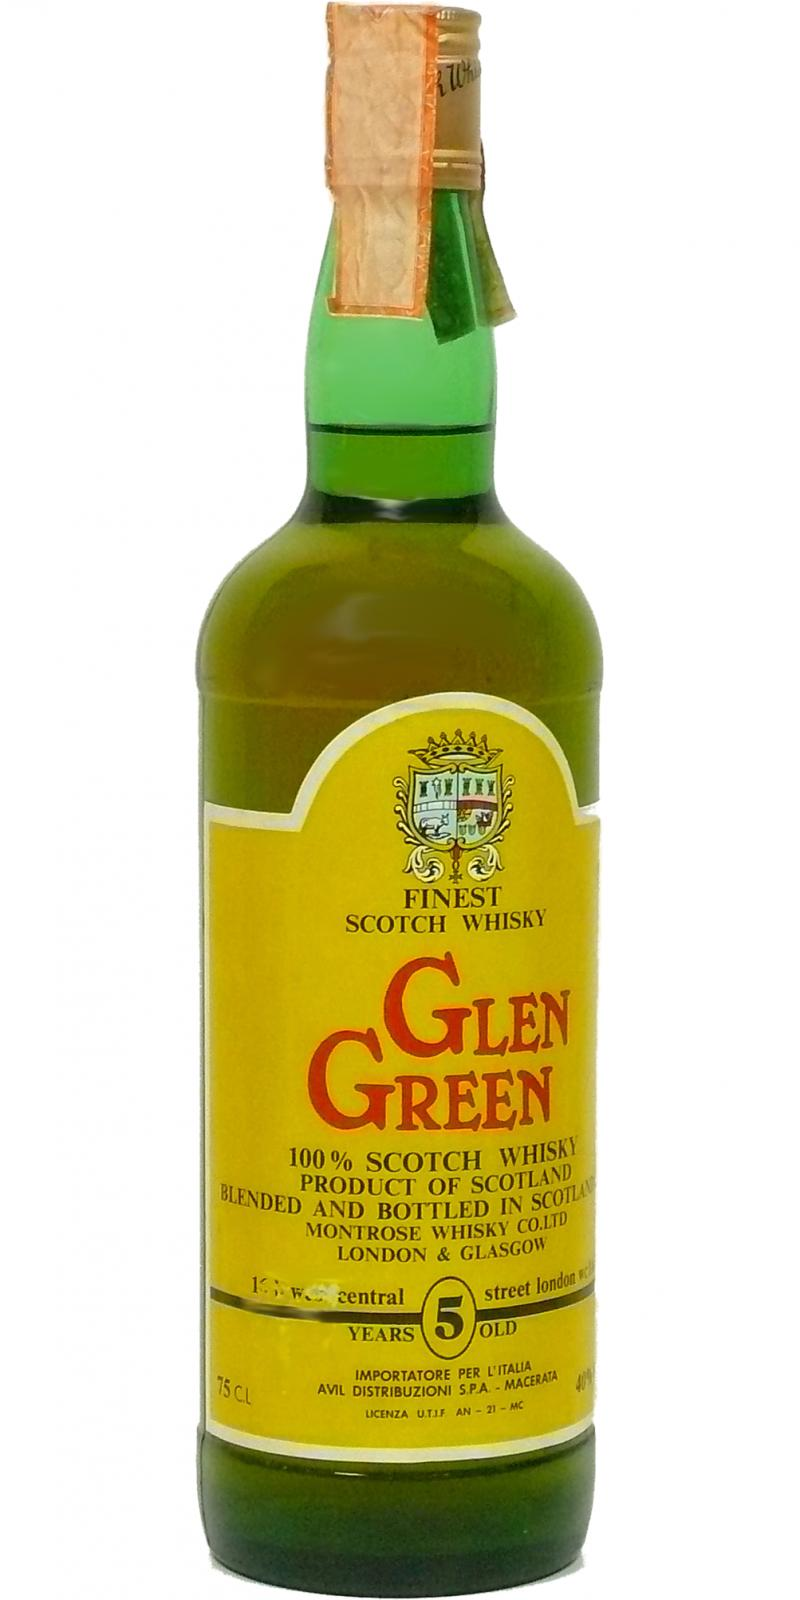 Glen Green 05-year-old